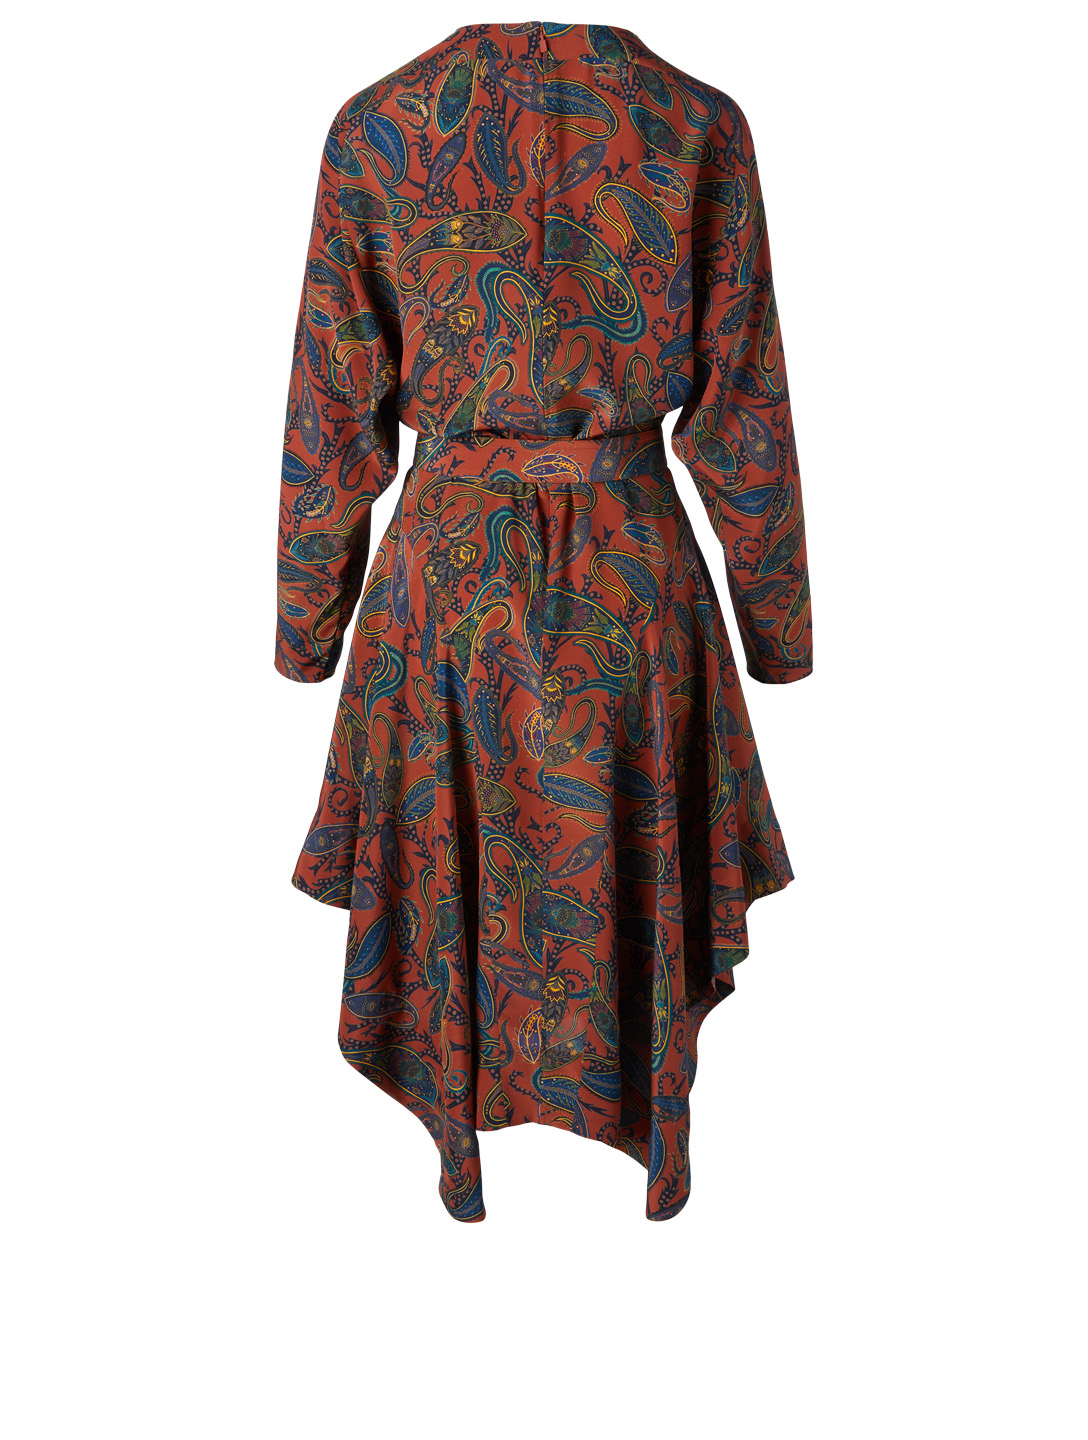 CHLOÉ Silk Belted Dress In Paisley Print Designers Brown